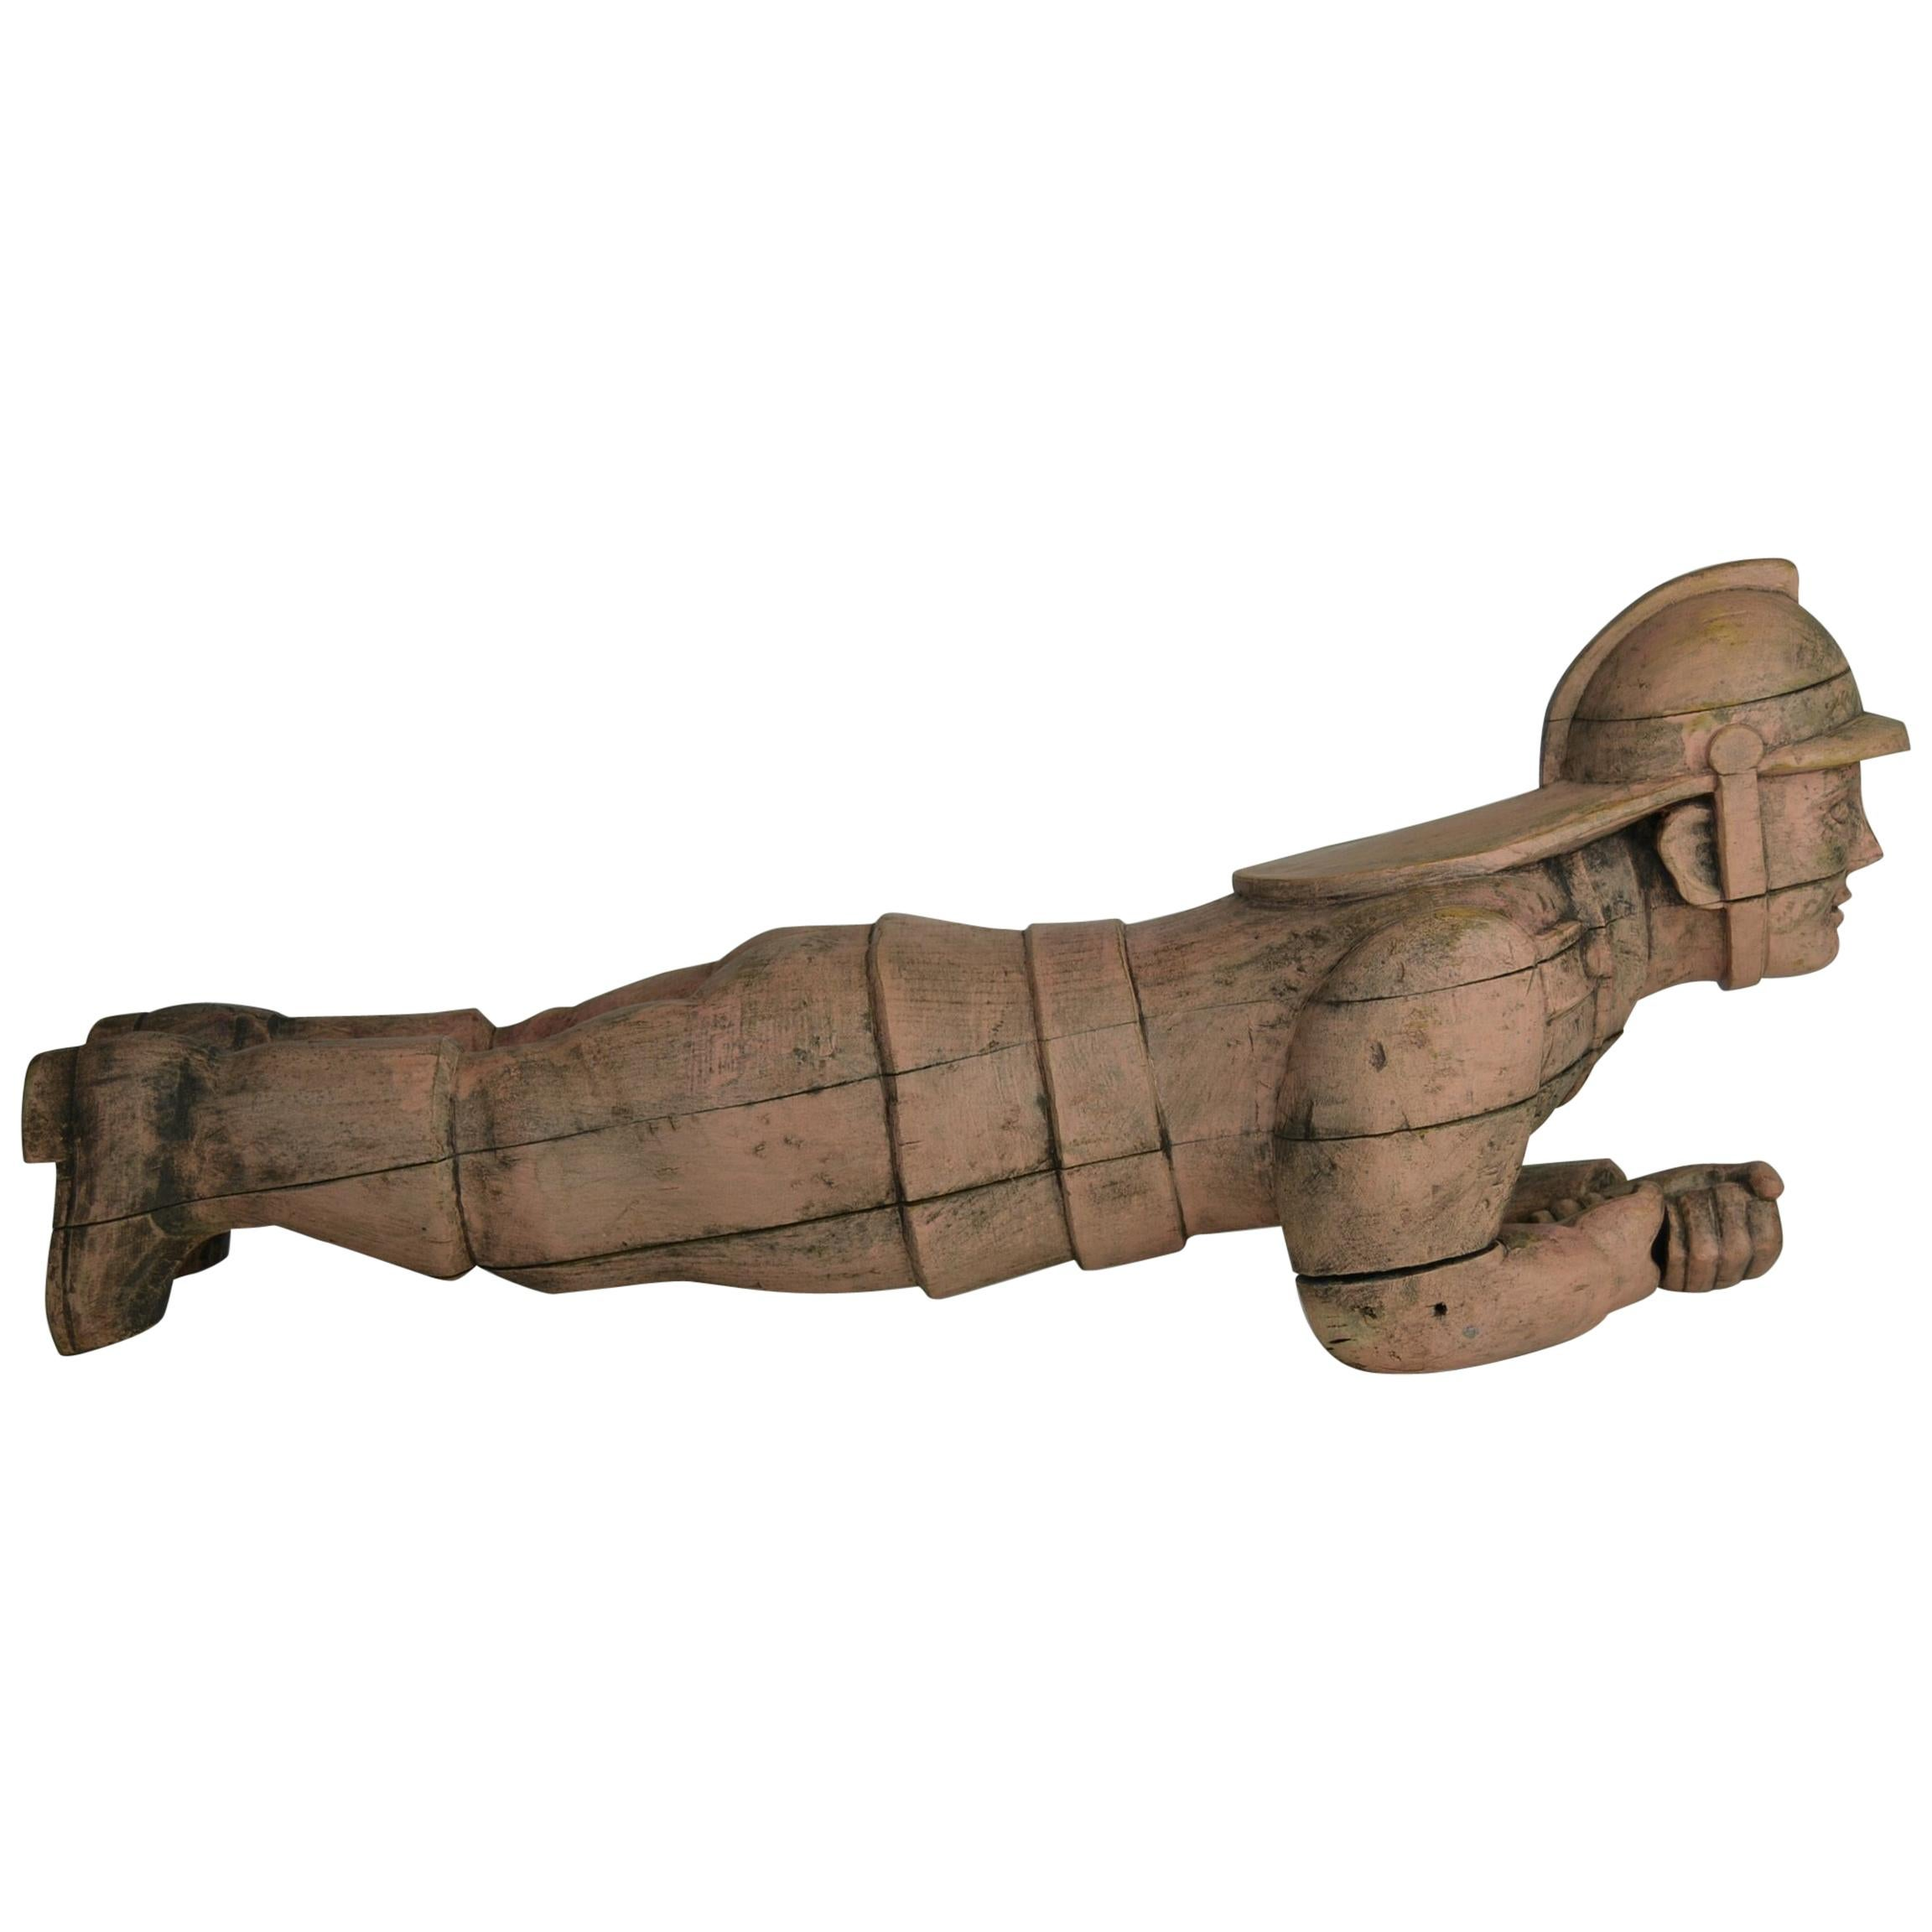 Carousel Carved Wood Fire Man Sculpture, Wilhelm Hennecke Germany, 1950s